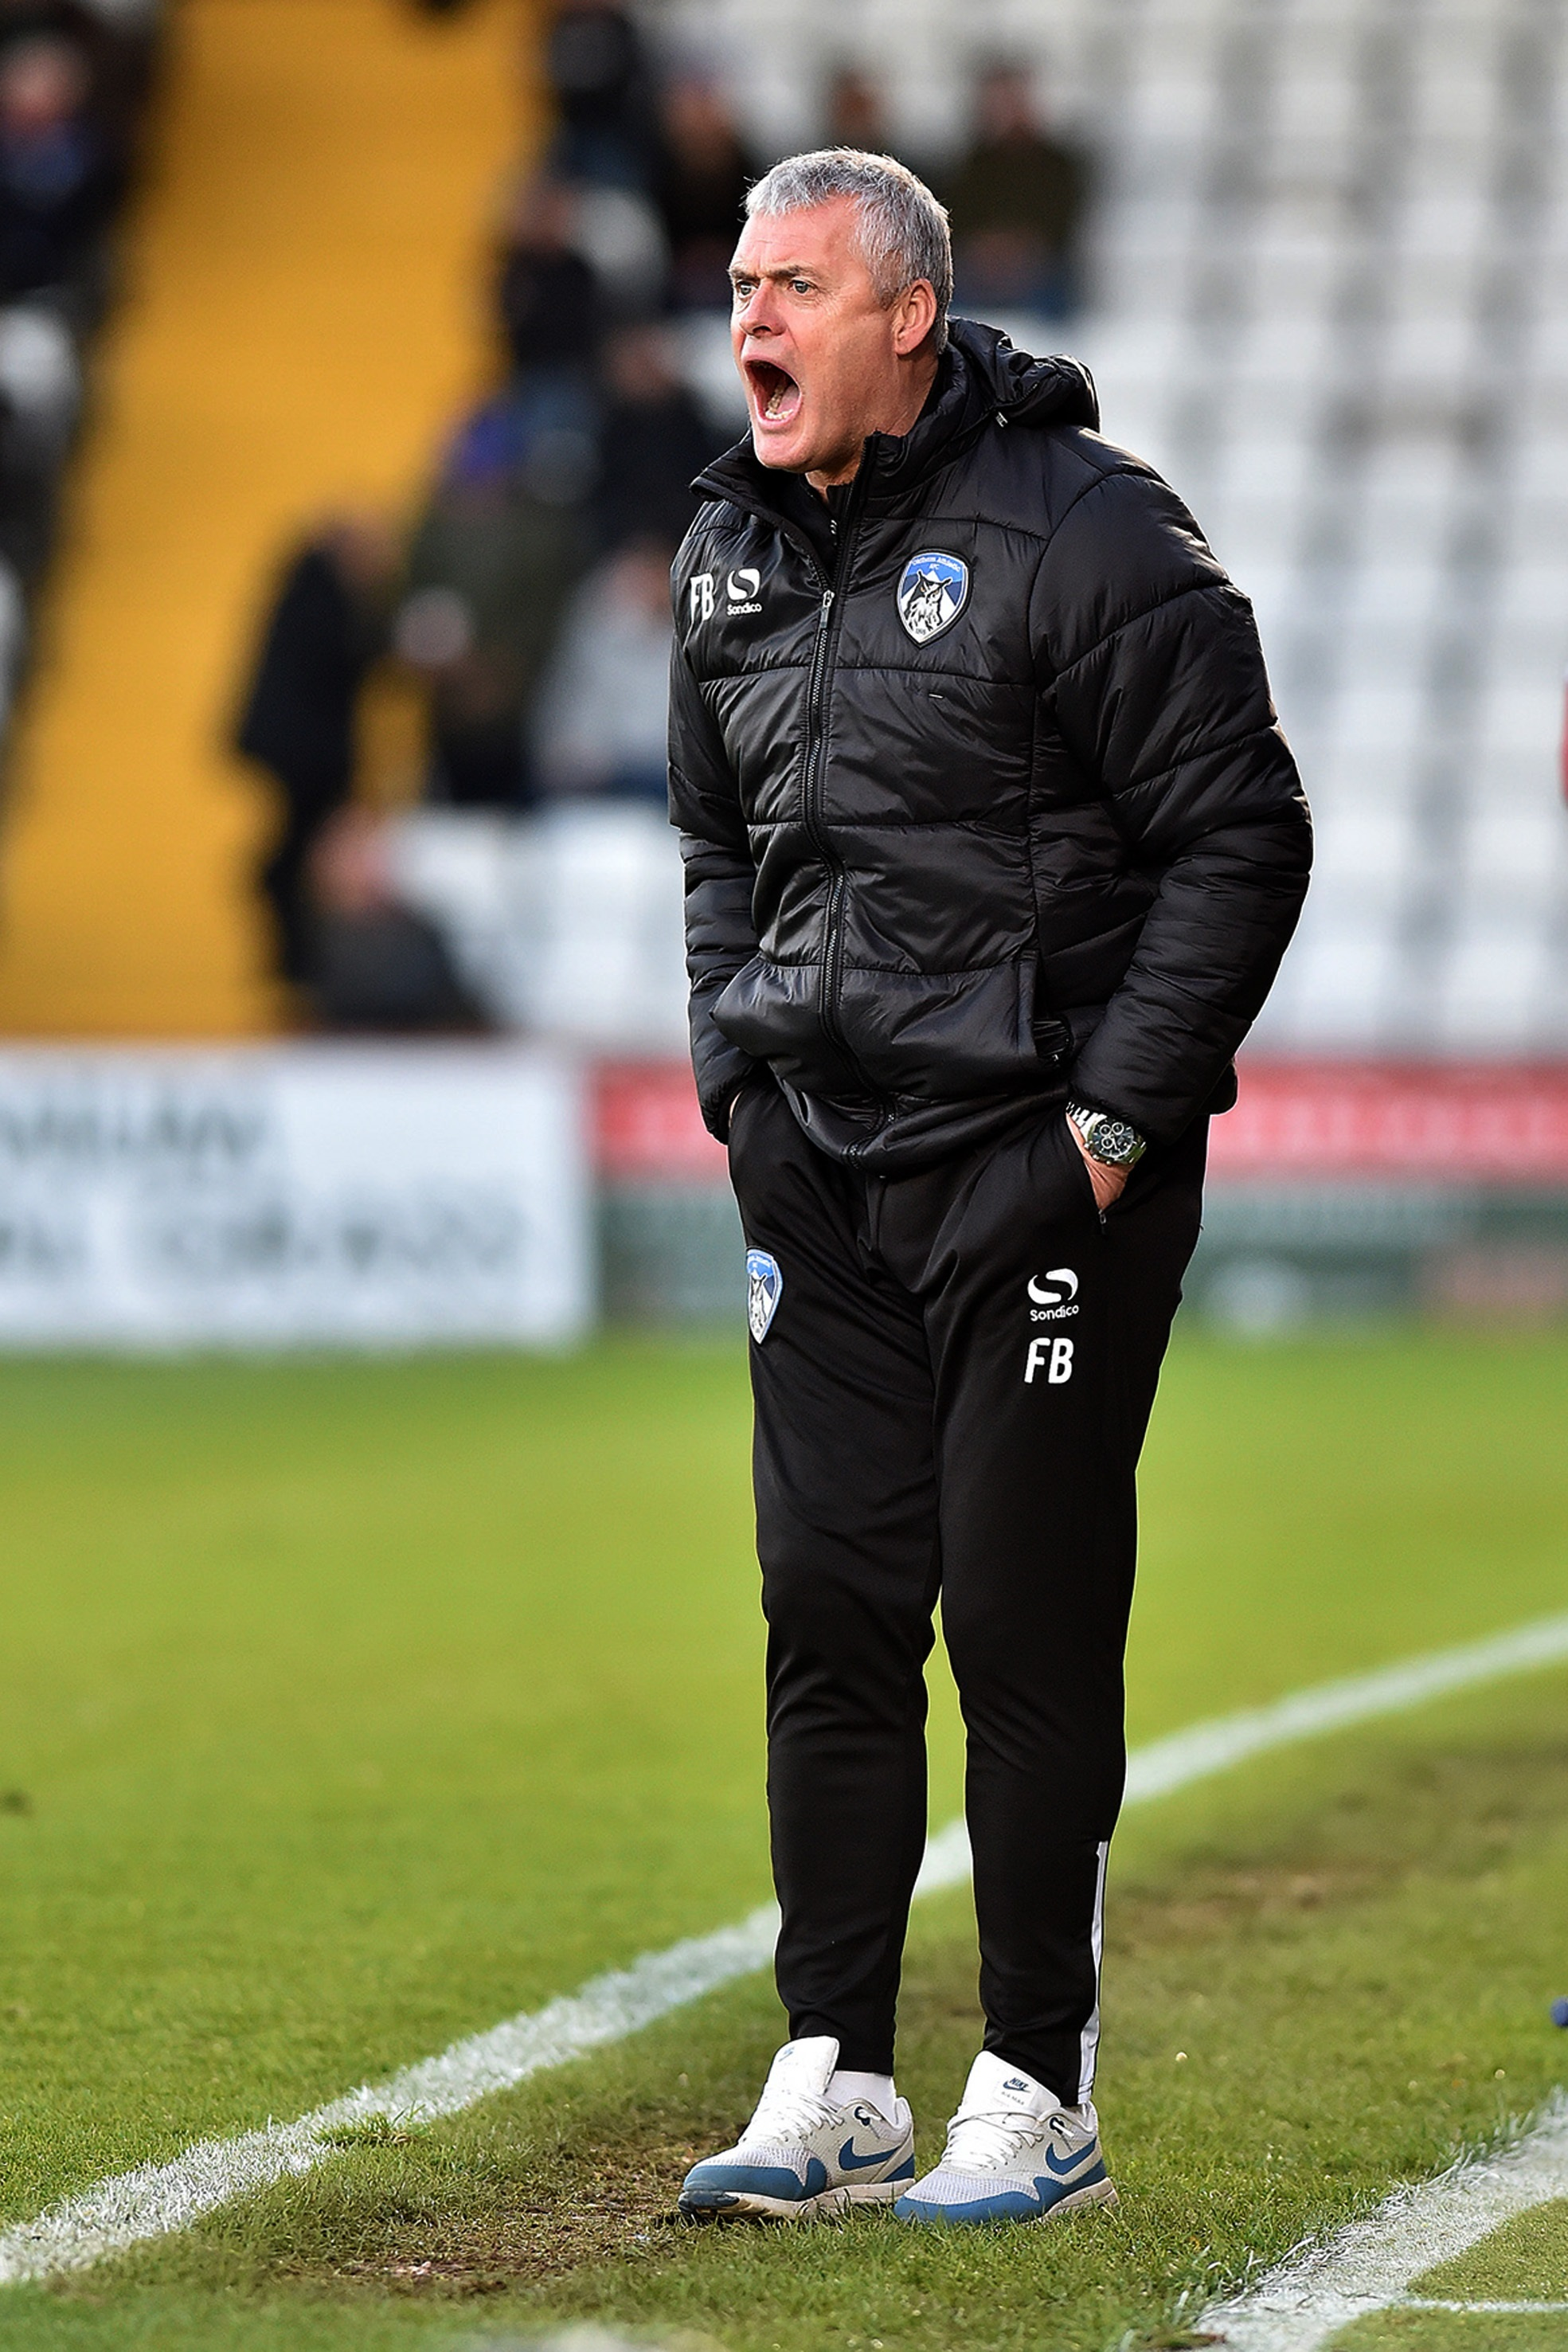 Latics boss Frankie Bunn shouts from the touchline at Stevenage